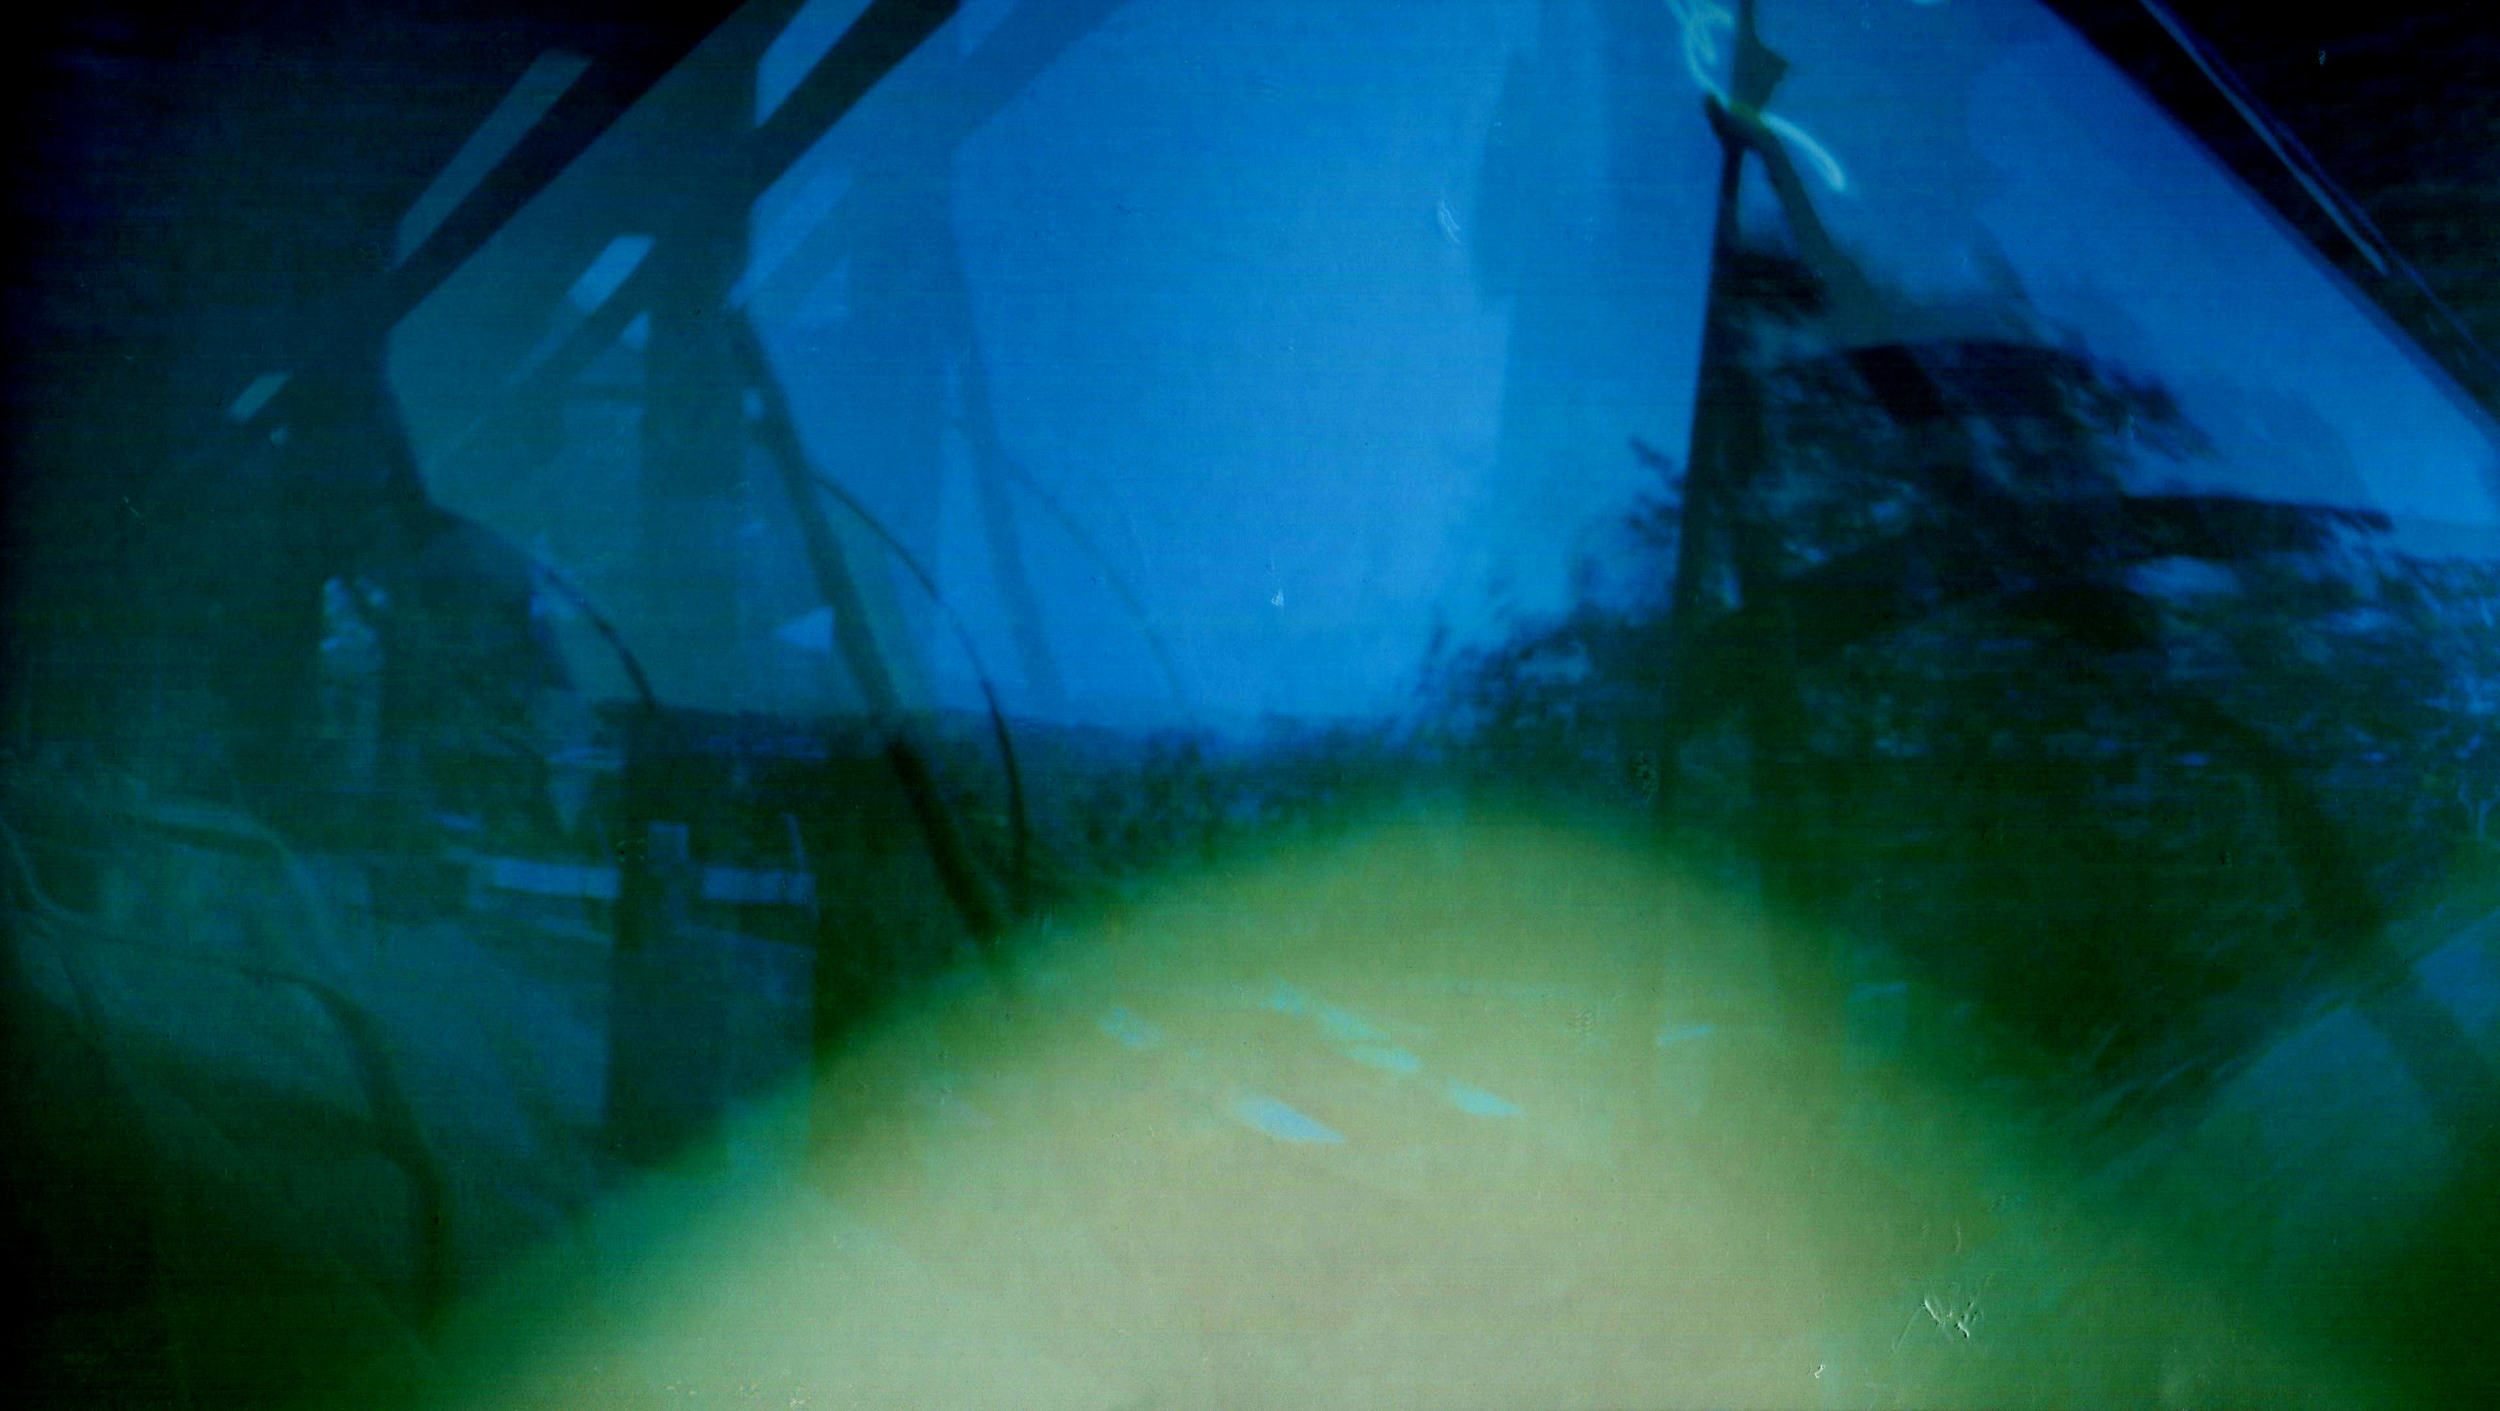 solargraphy5.jpg